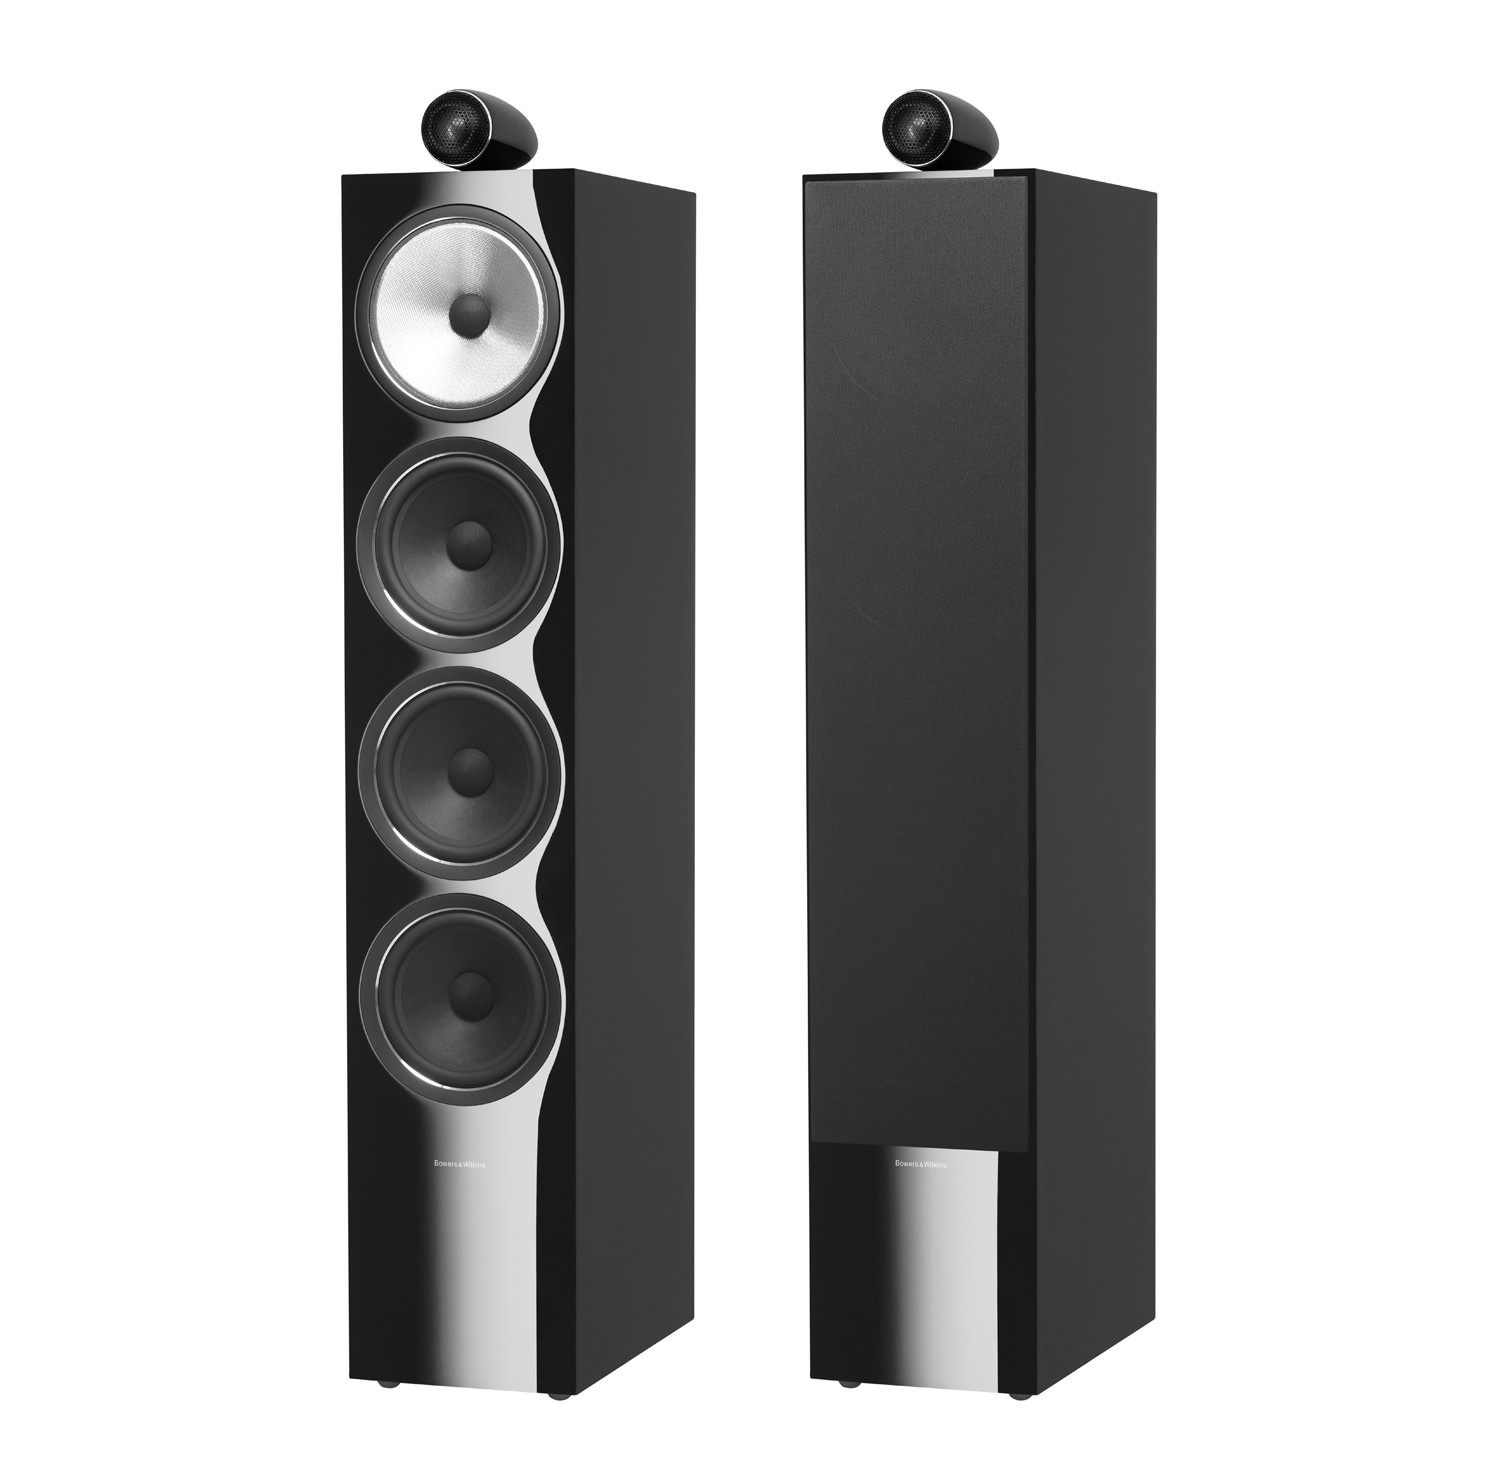 Bowers & Wilkins 702 S2 BW